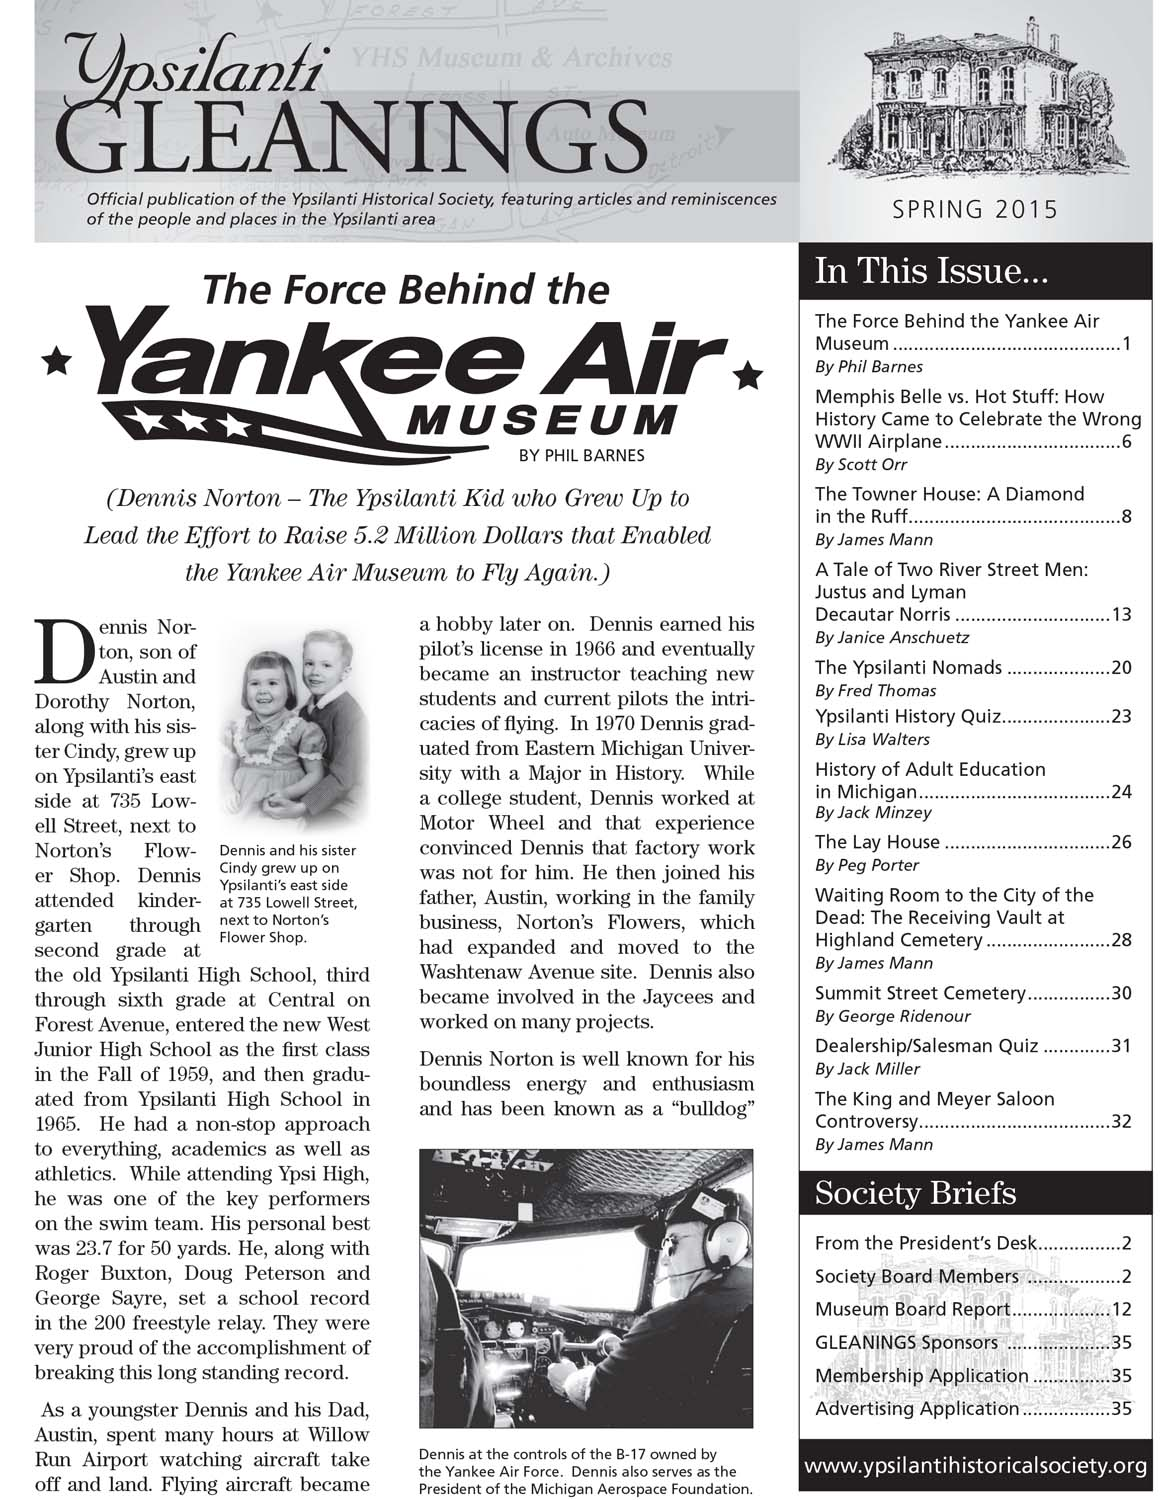 The Force Behind the Yankee Air Museum image